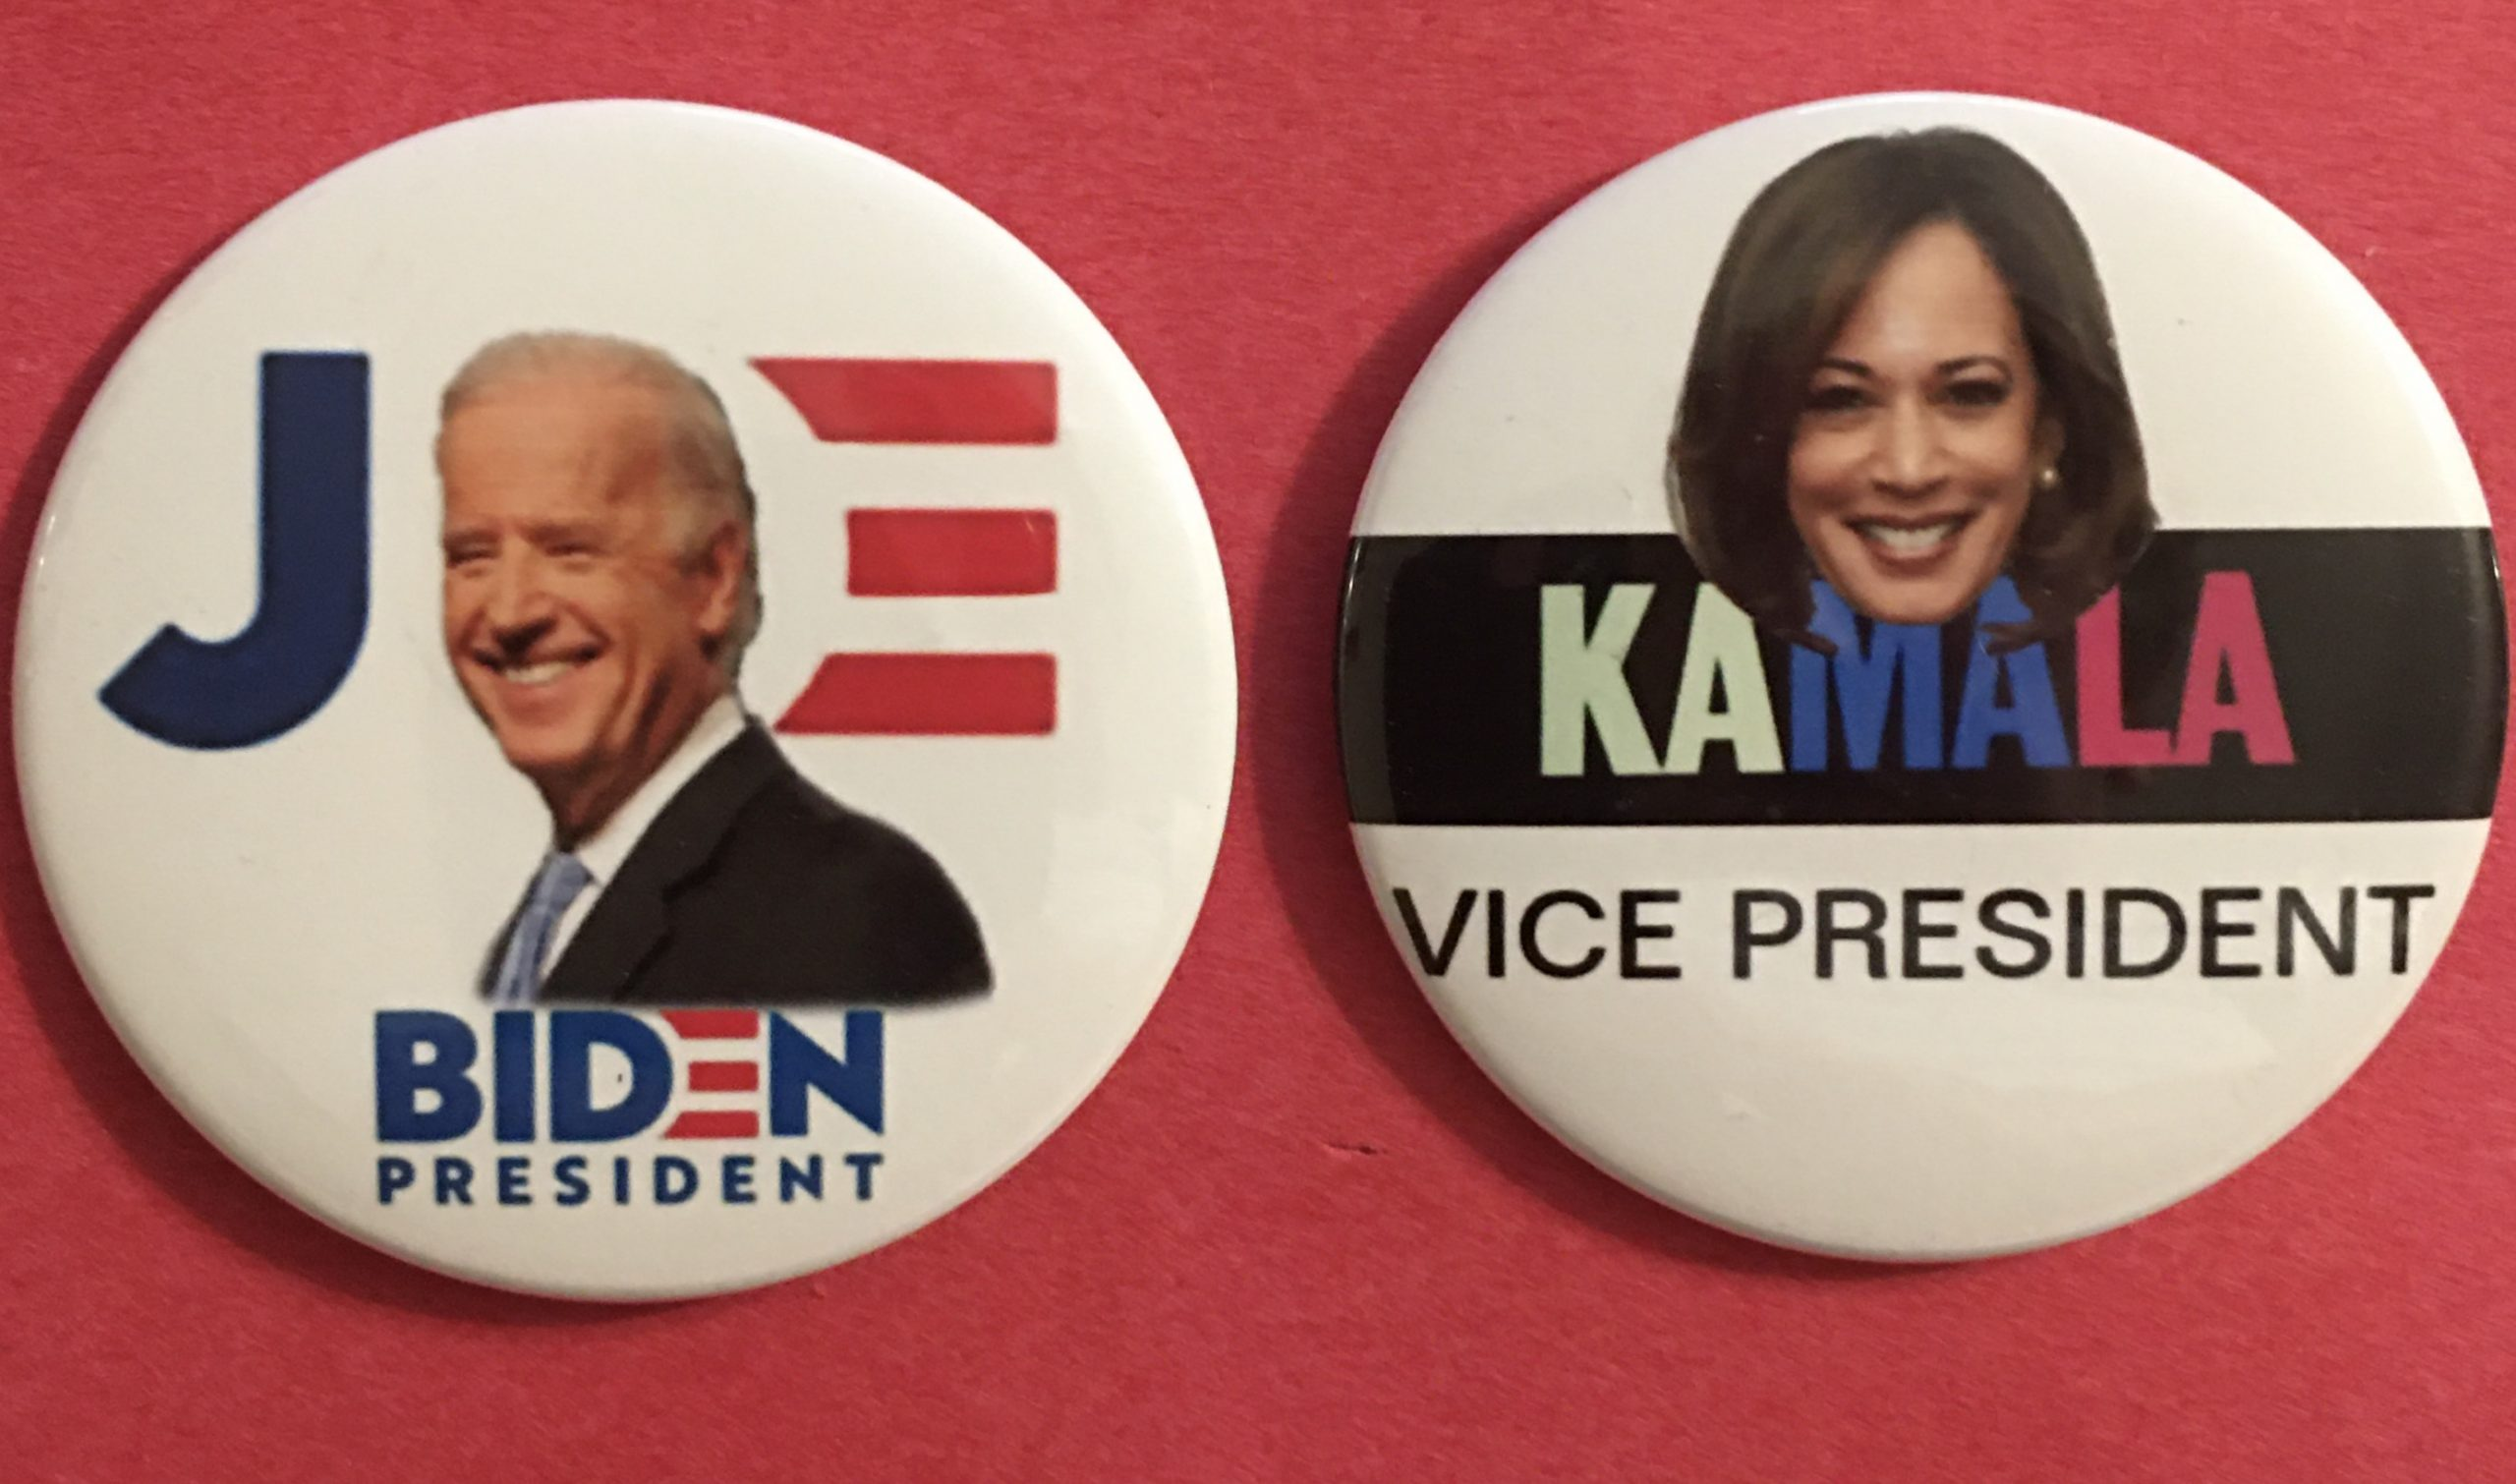 Joe Biden - Kamala Harris buttons